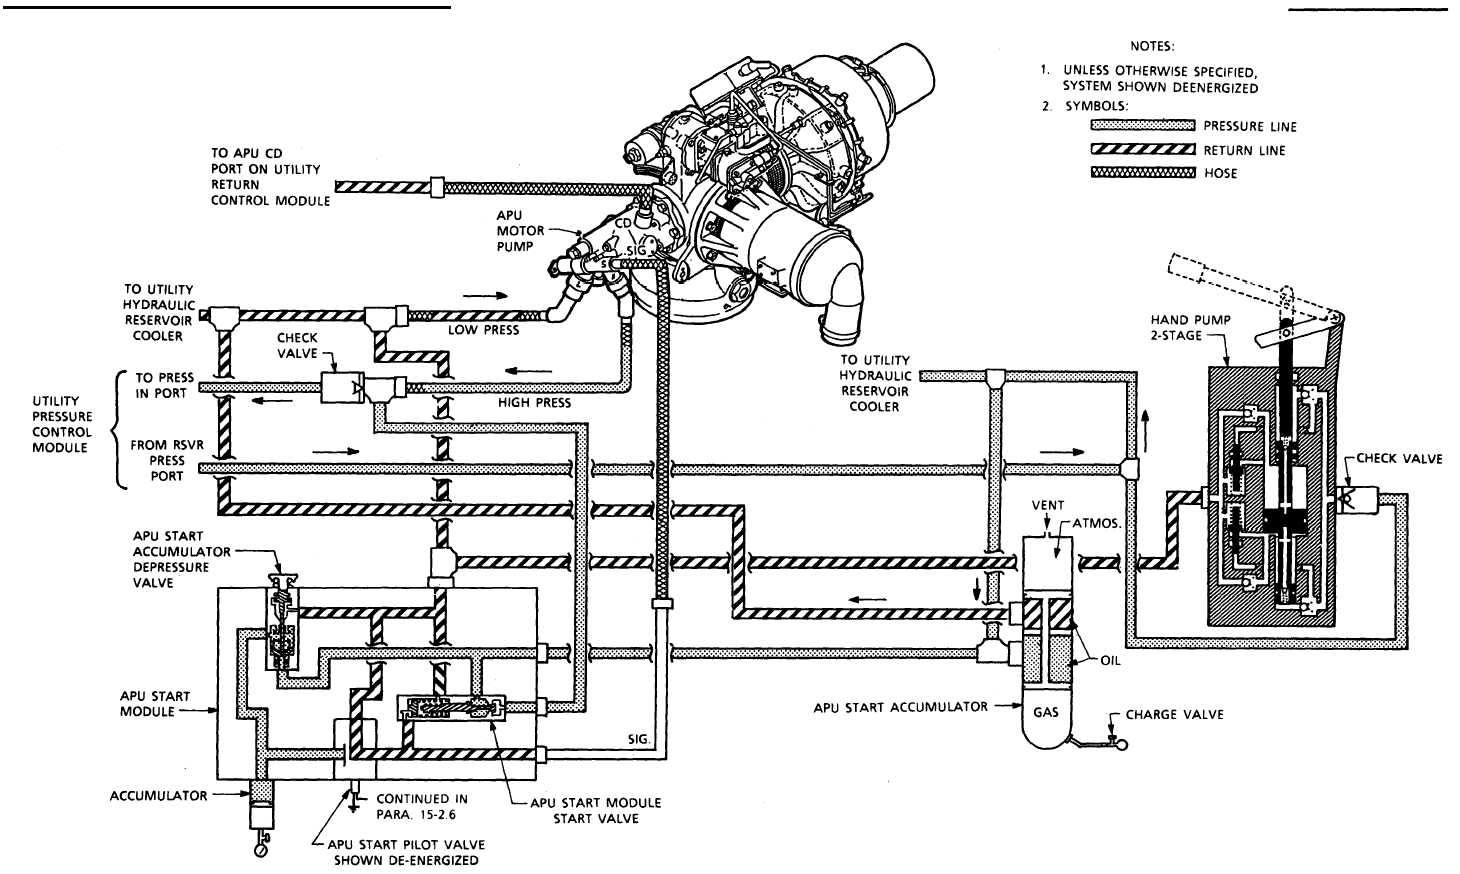 Pneumatic Schematic Of Pump And Tank